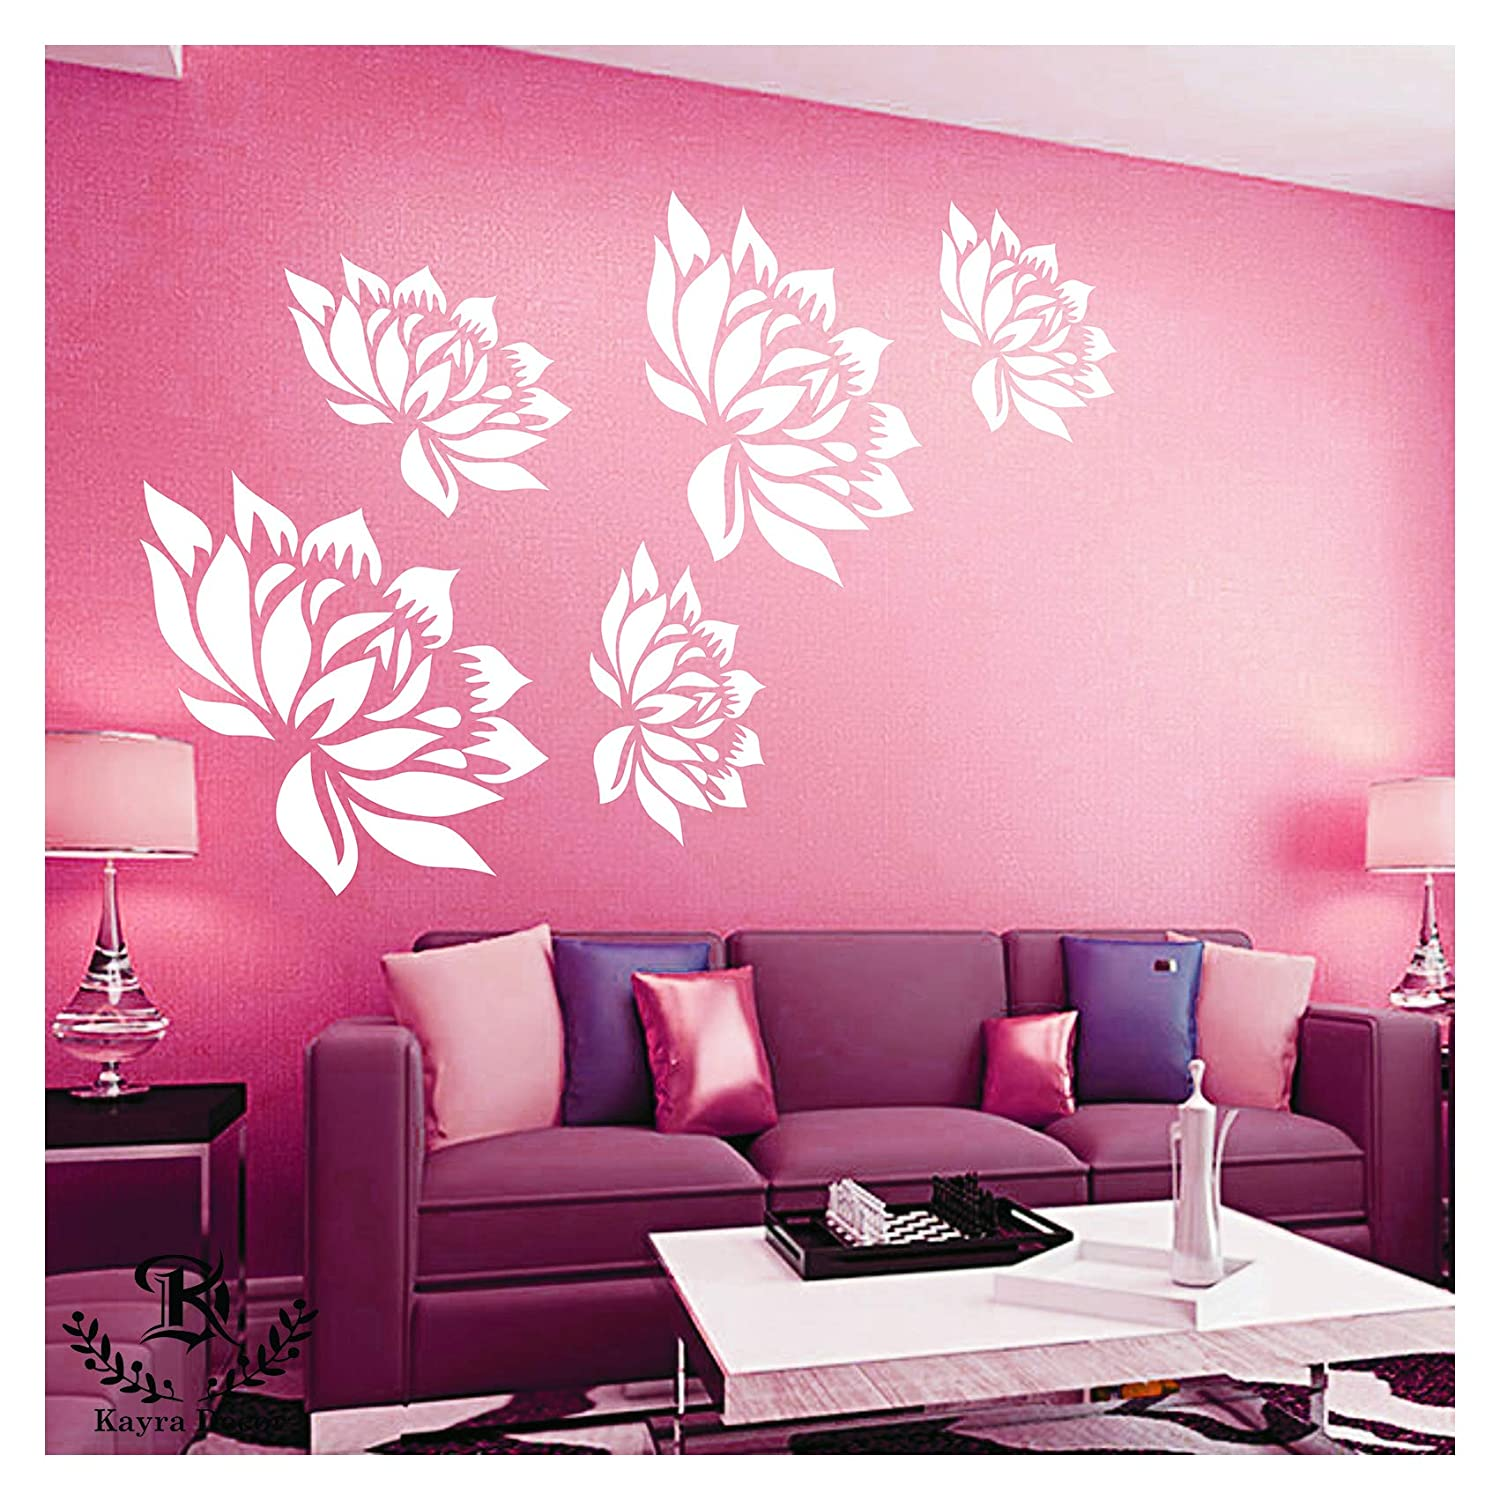 Kayra Decor Reusable DIY Wall Stencil Painting for Home Decoration (PVC,  16-inch x 24-inch)